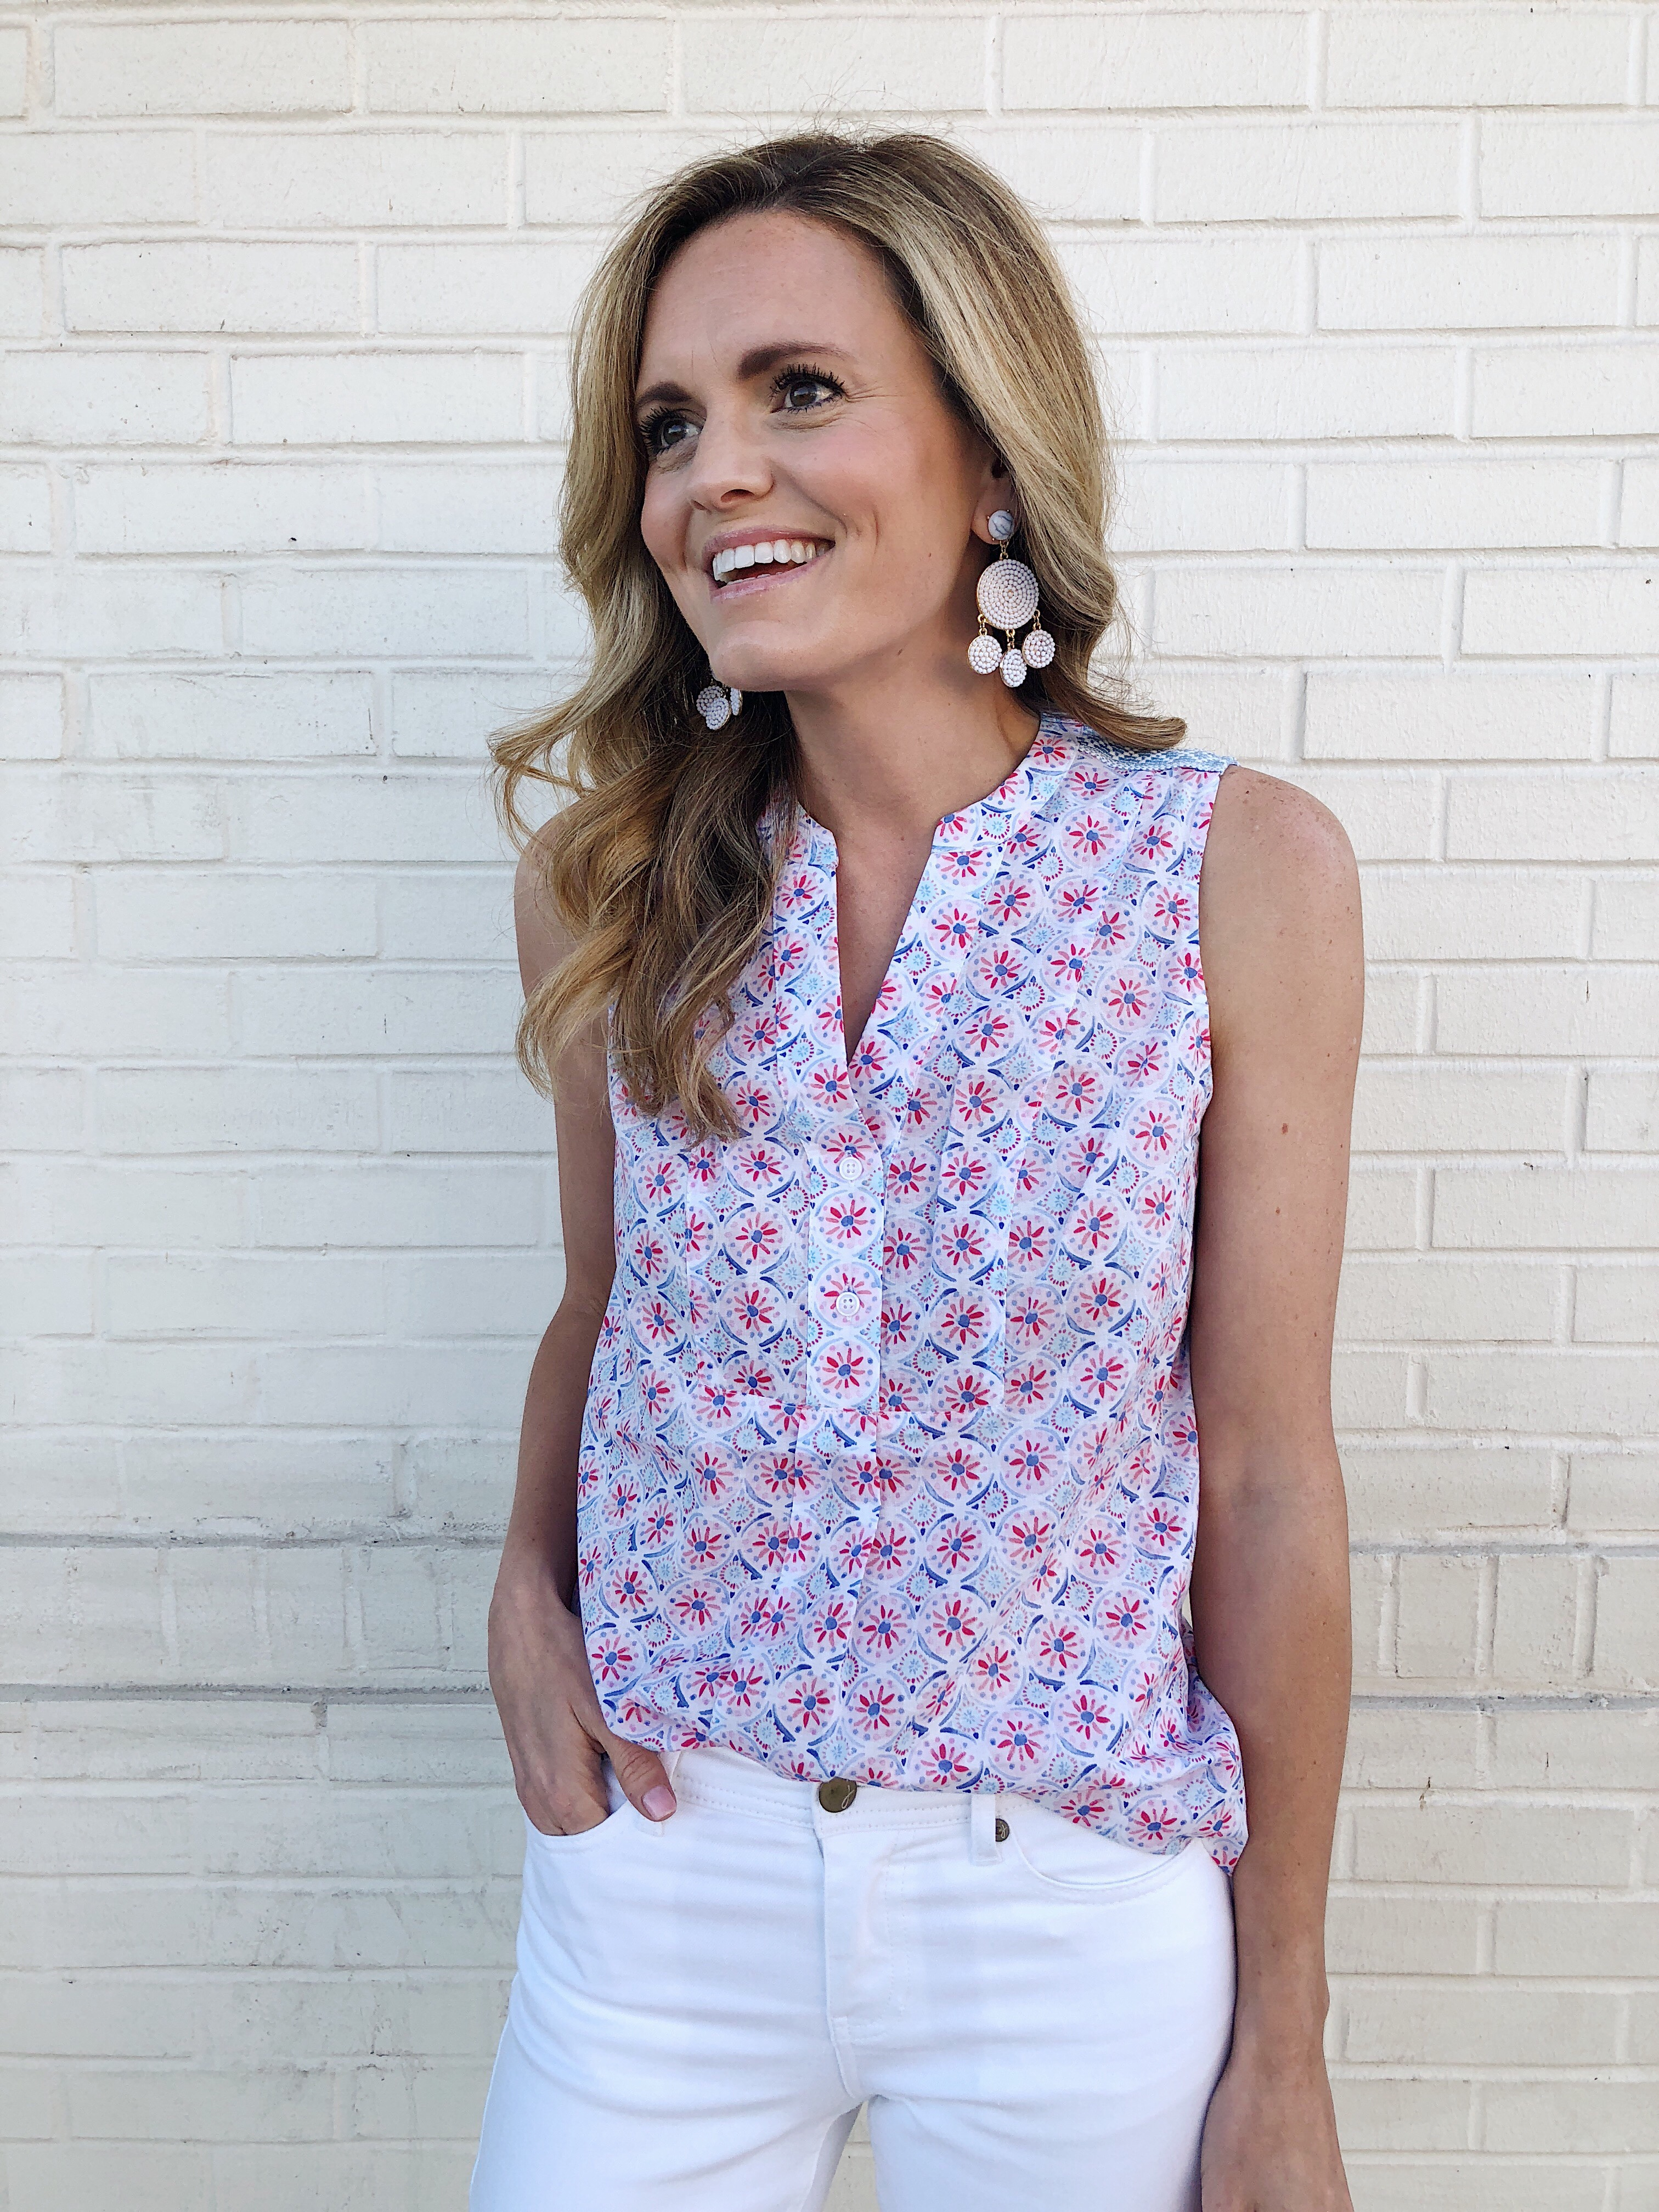 Joules Launch At Dillards Styles From Collection